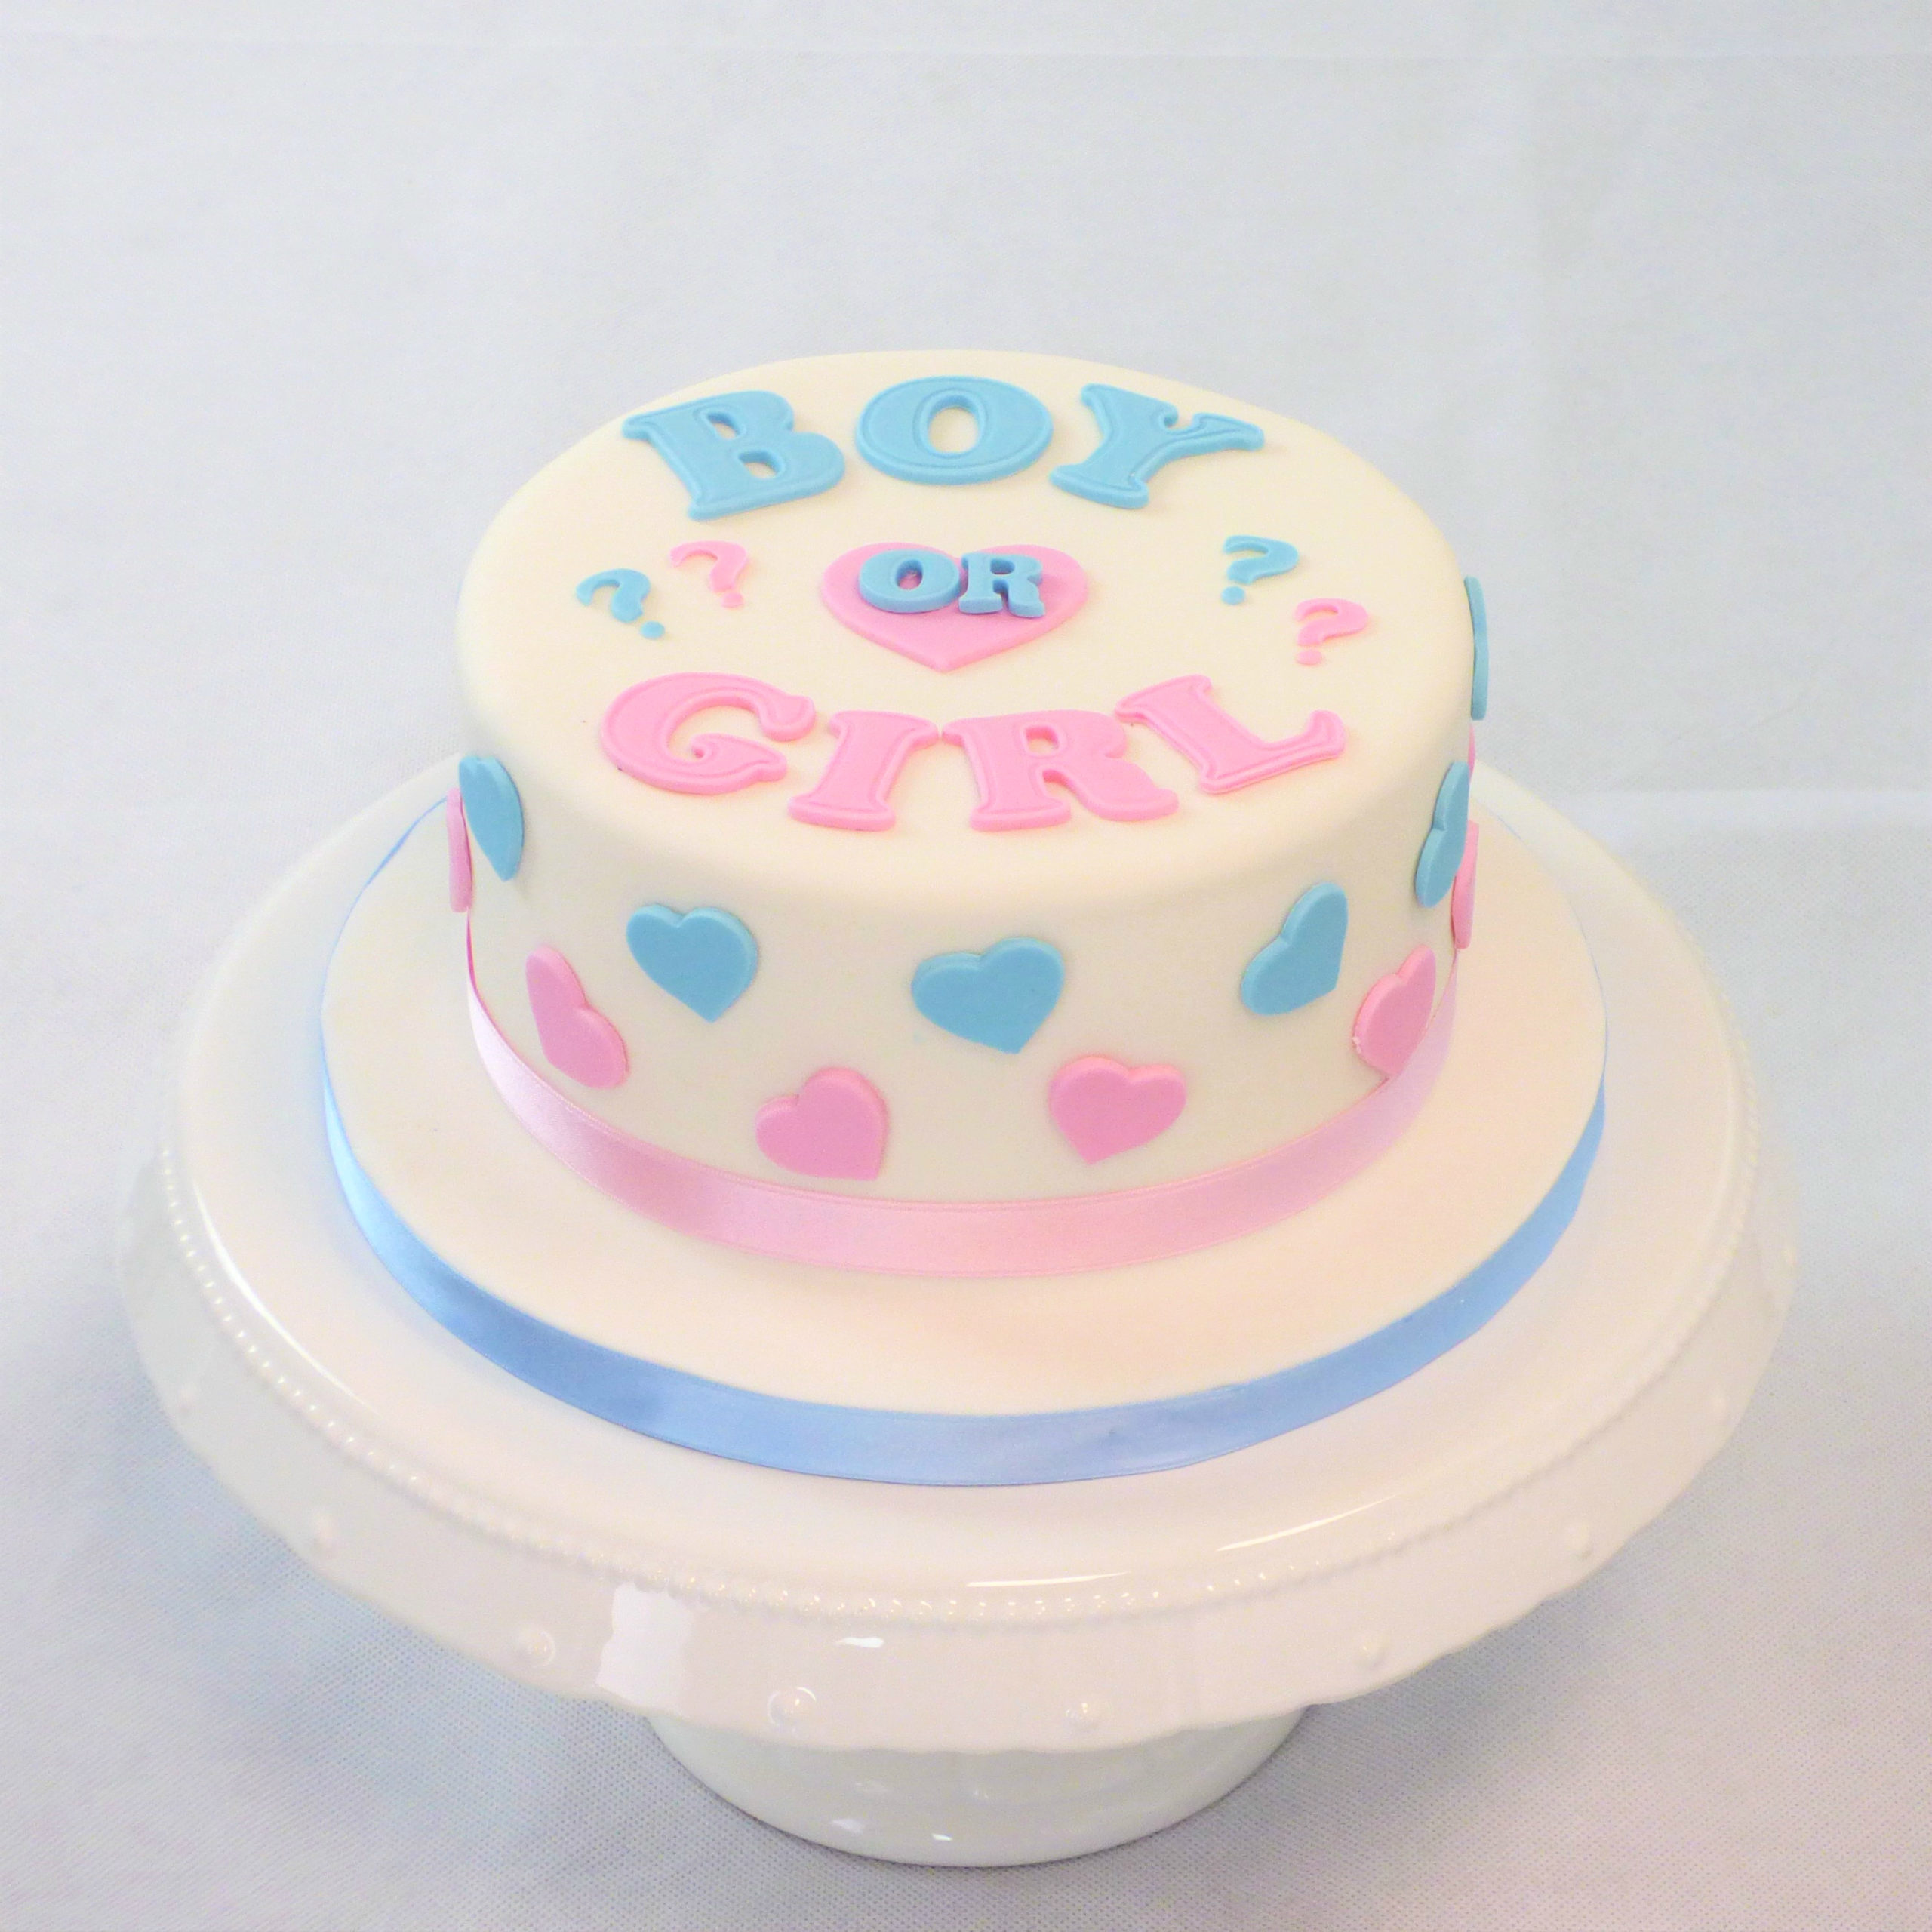 torta gender reval boy or girl bianca cuori azzurro e rosa